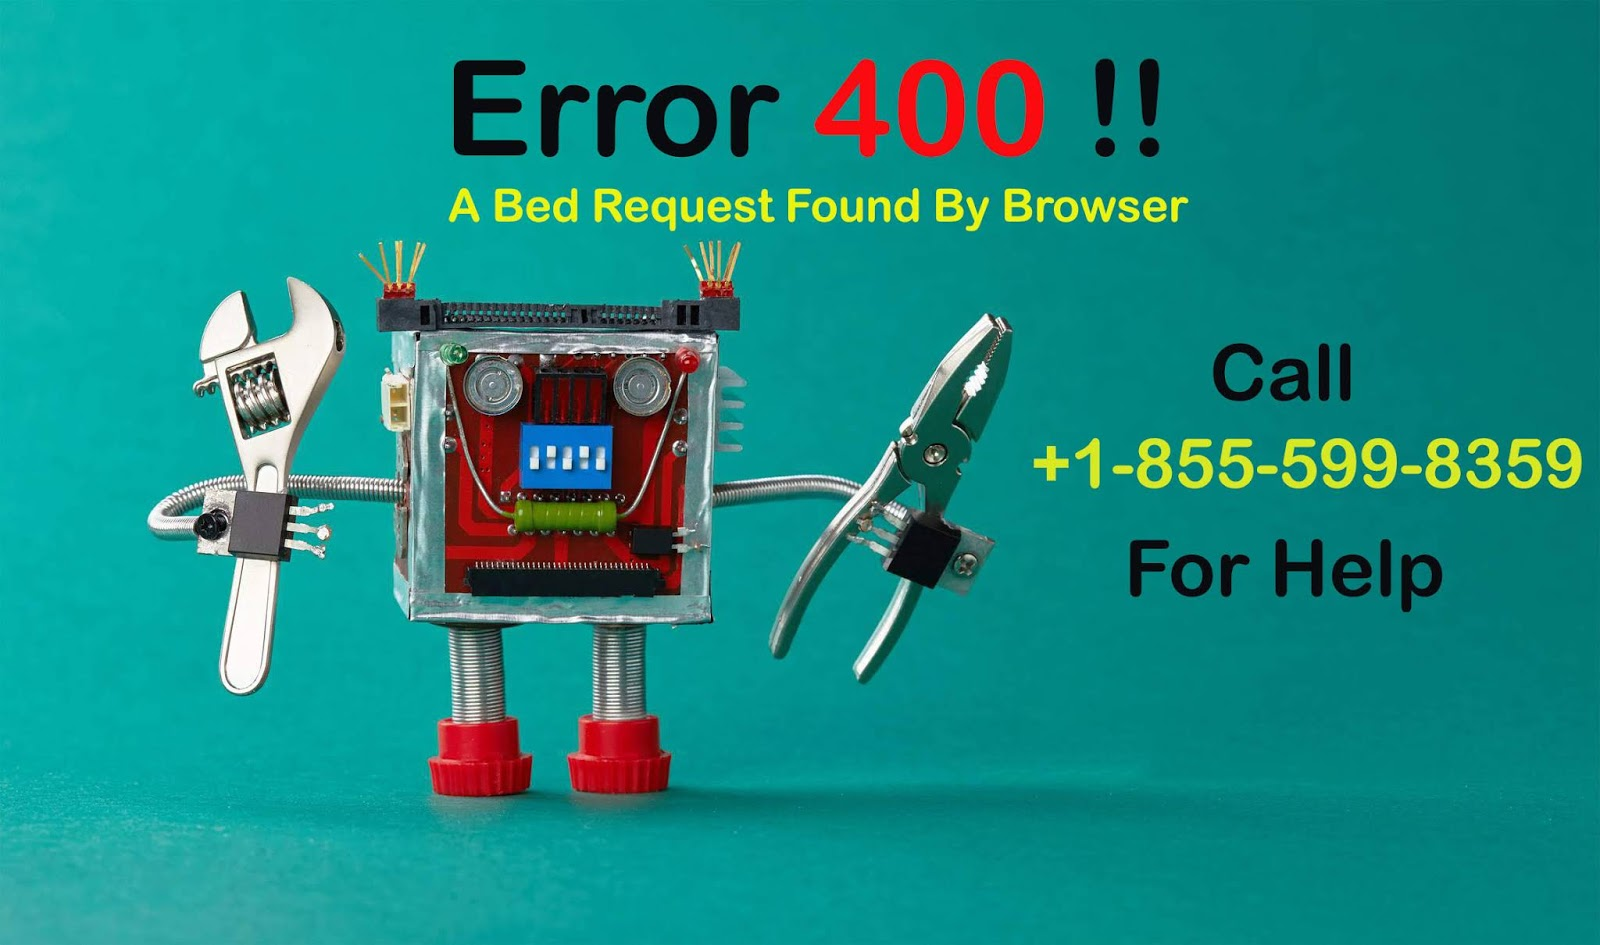 How to Get Rid of AOL 400 Bad Request? | +1-855-599-8359